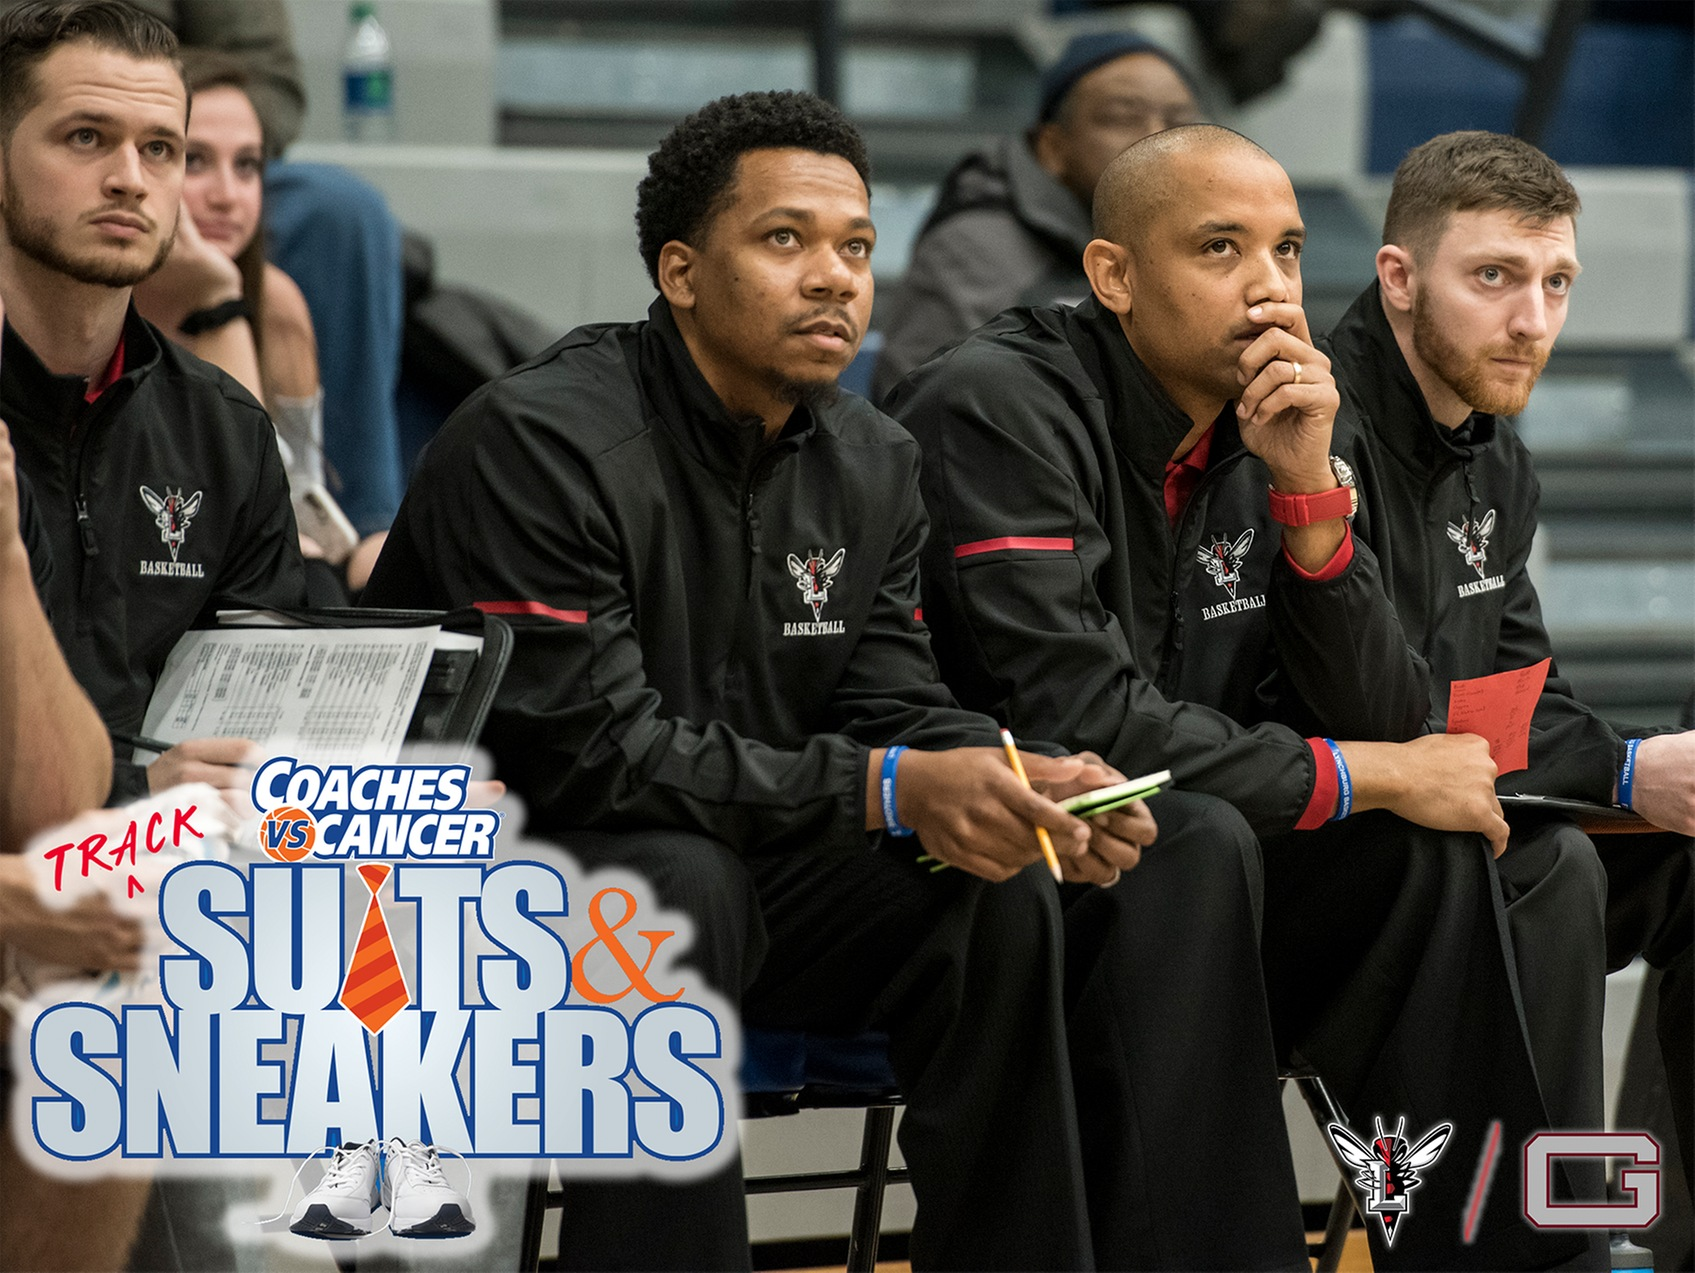 Lynchburg men's basketball coaches sit on the bench watching a game